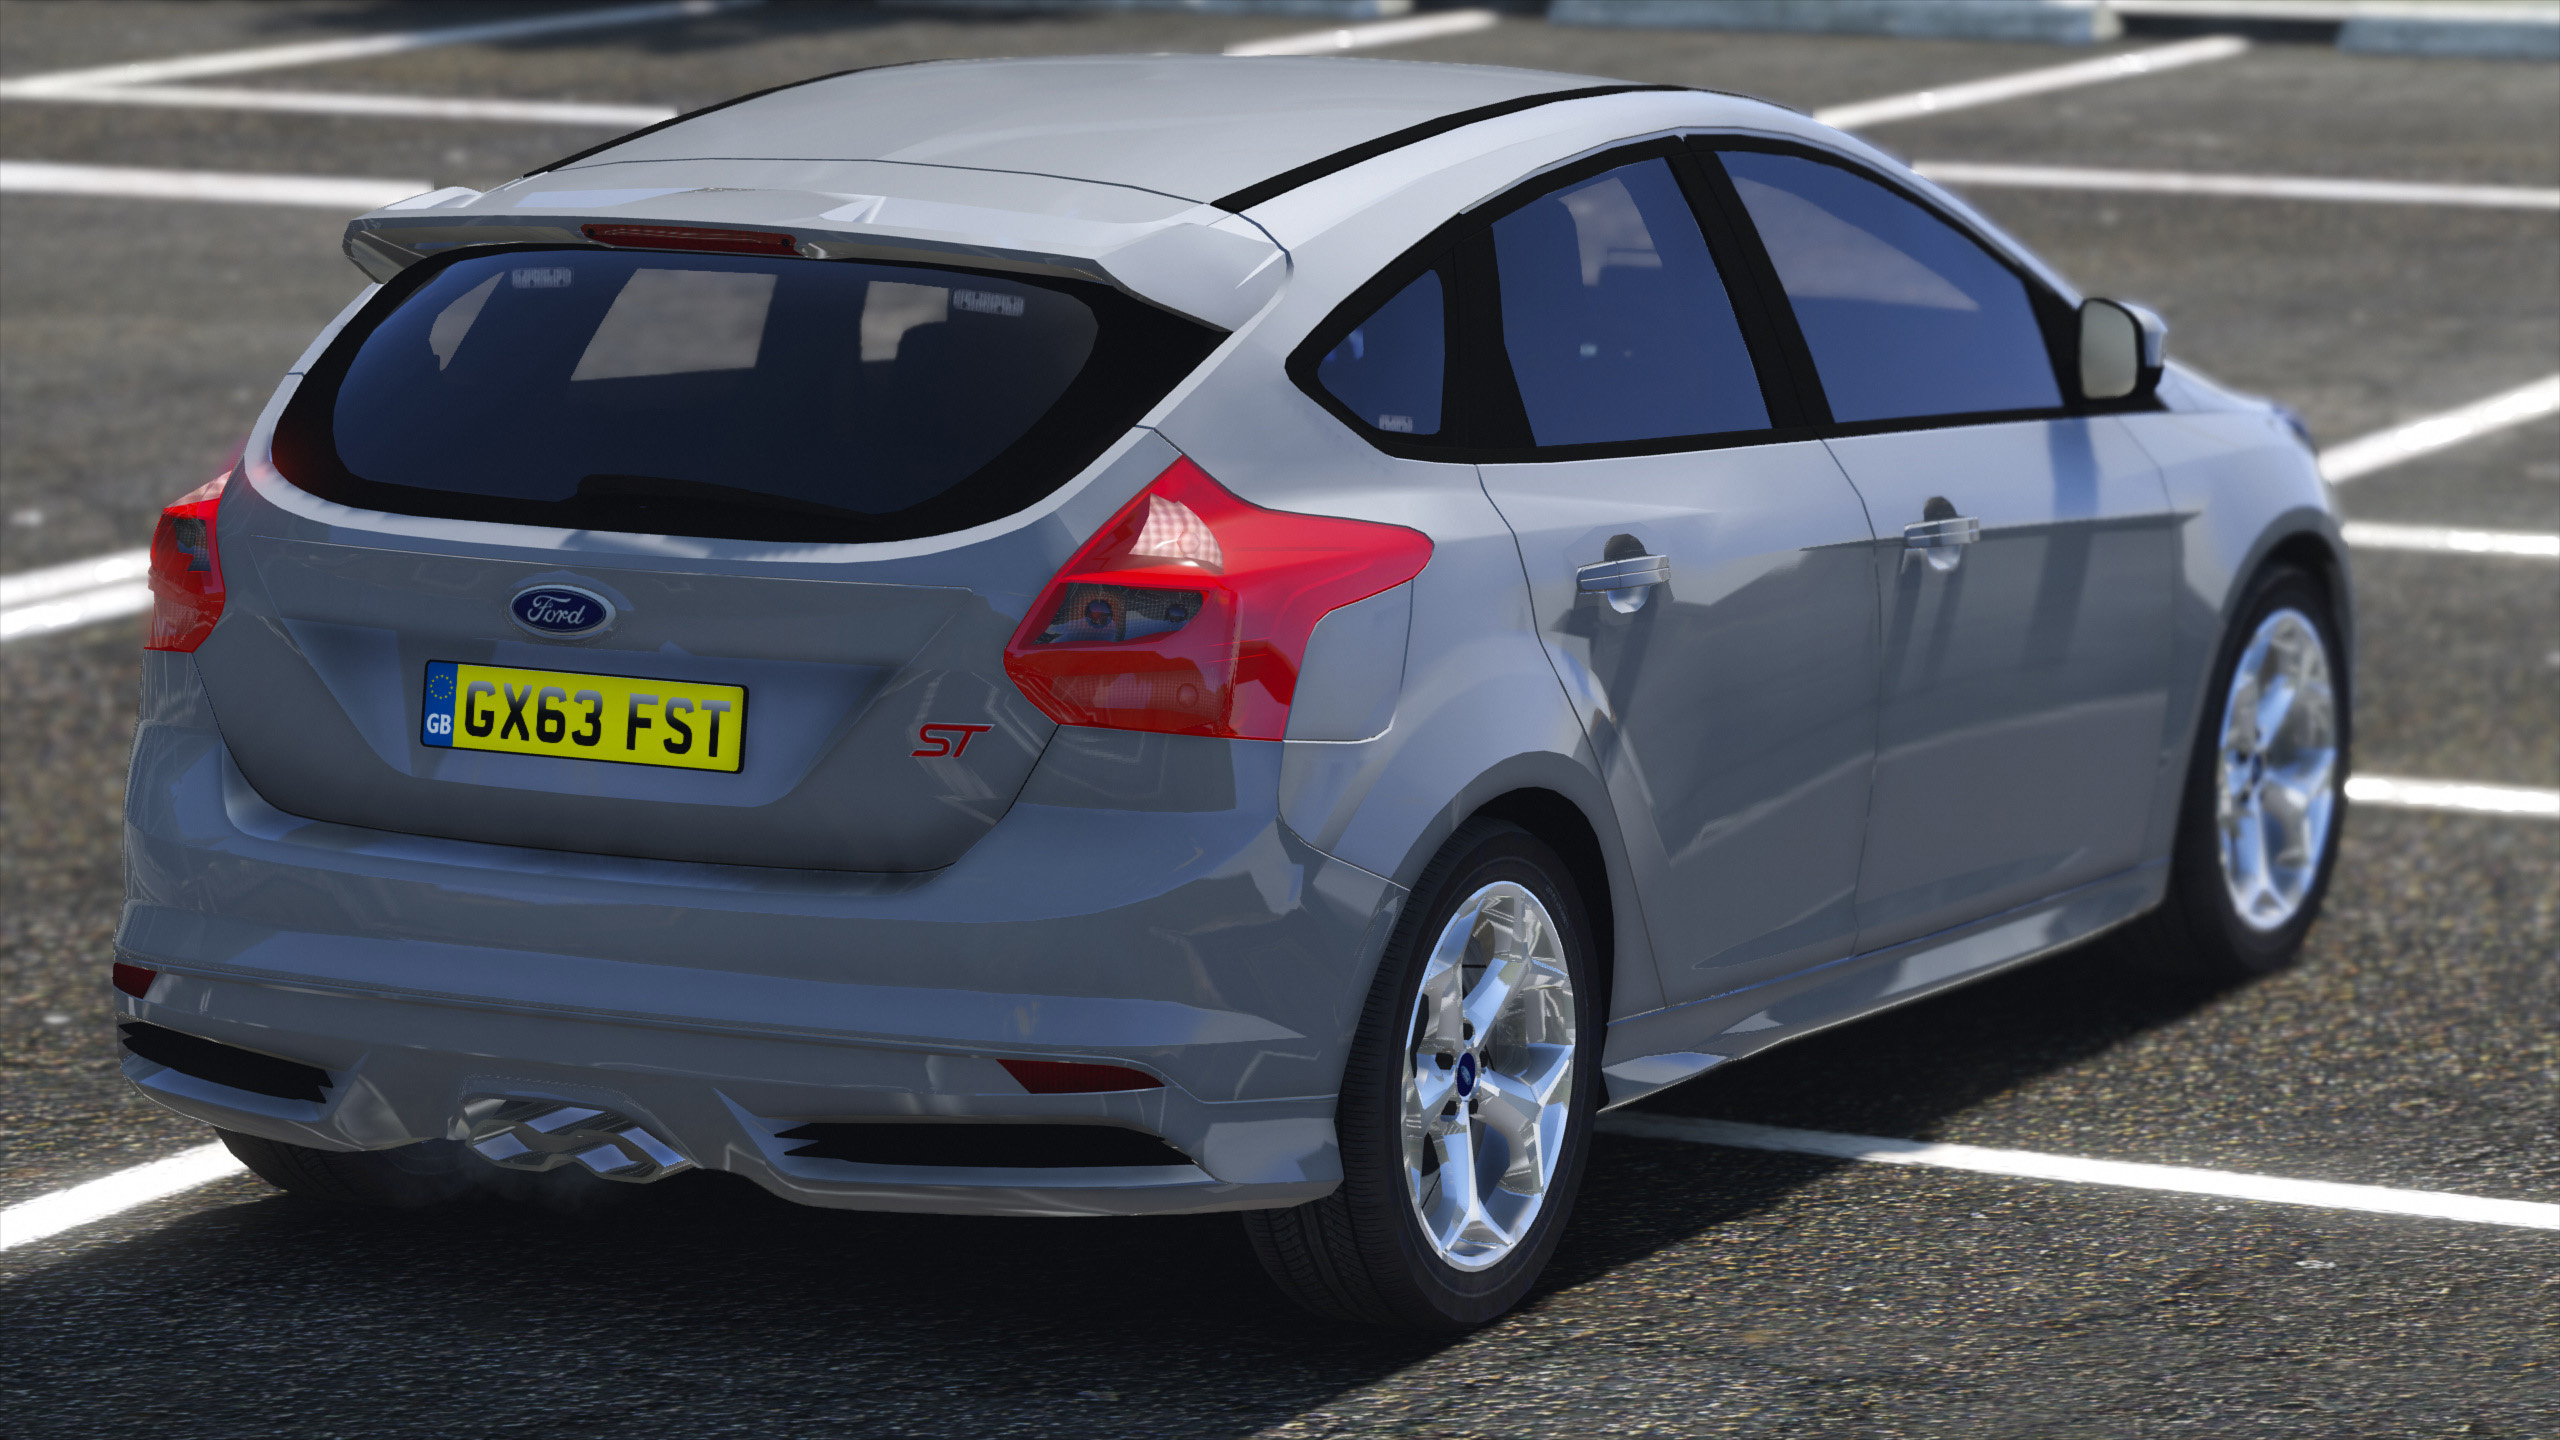 2013 surrey police ford focus st gta5. Black Bedroom Furniture Sets. Home Design Ideas